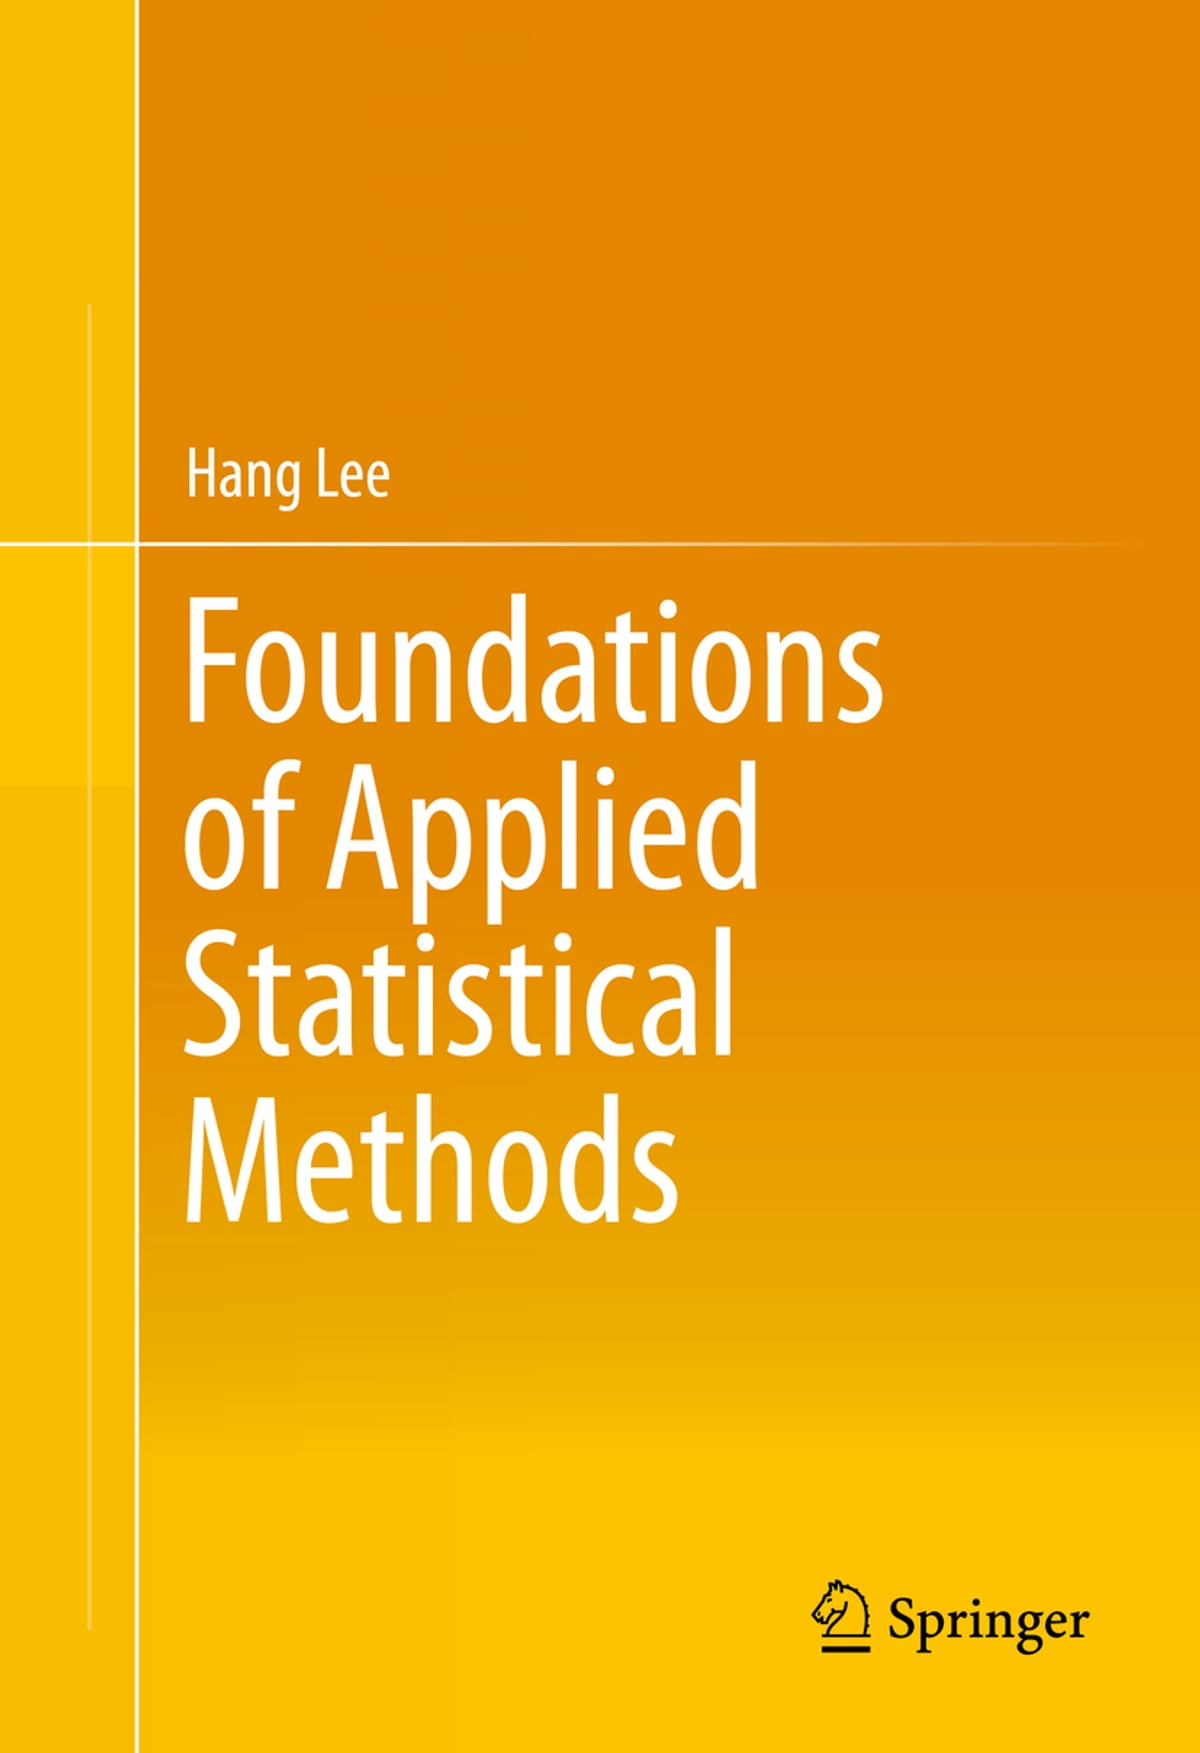 Foundations of applied statistical methods ebook by hang lee foundations of applied statistical methods ebook by hang lee 9783319024028 rakuten kobo fandeluxe Image collections